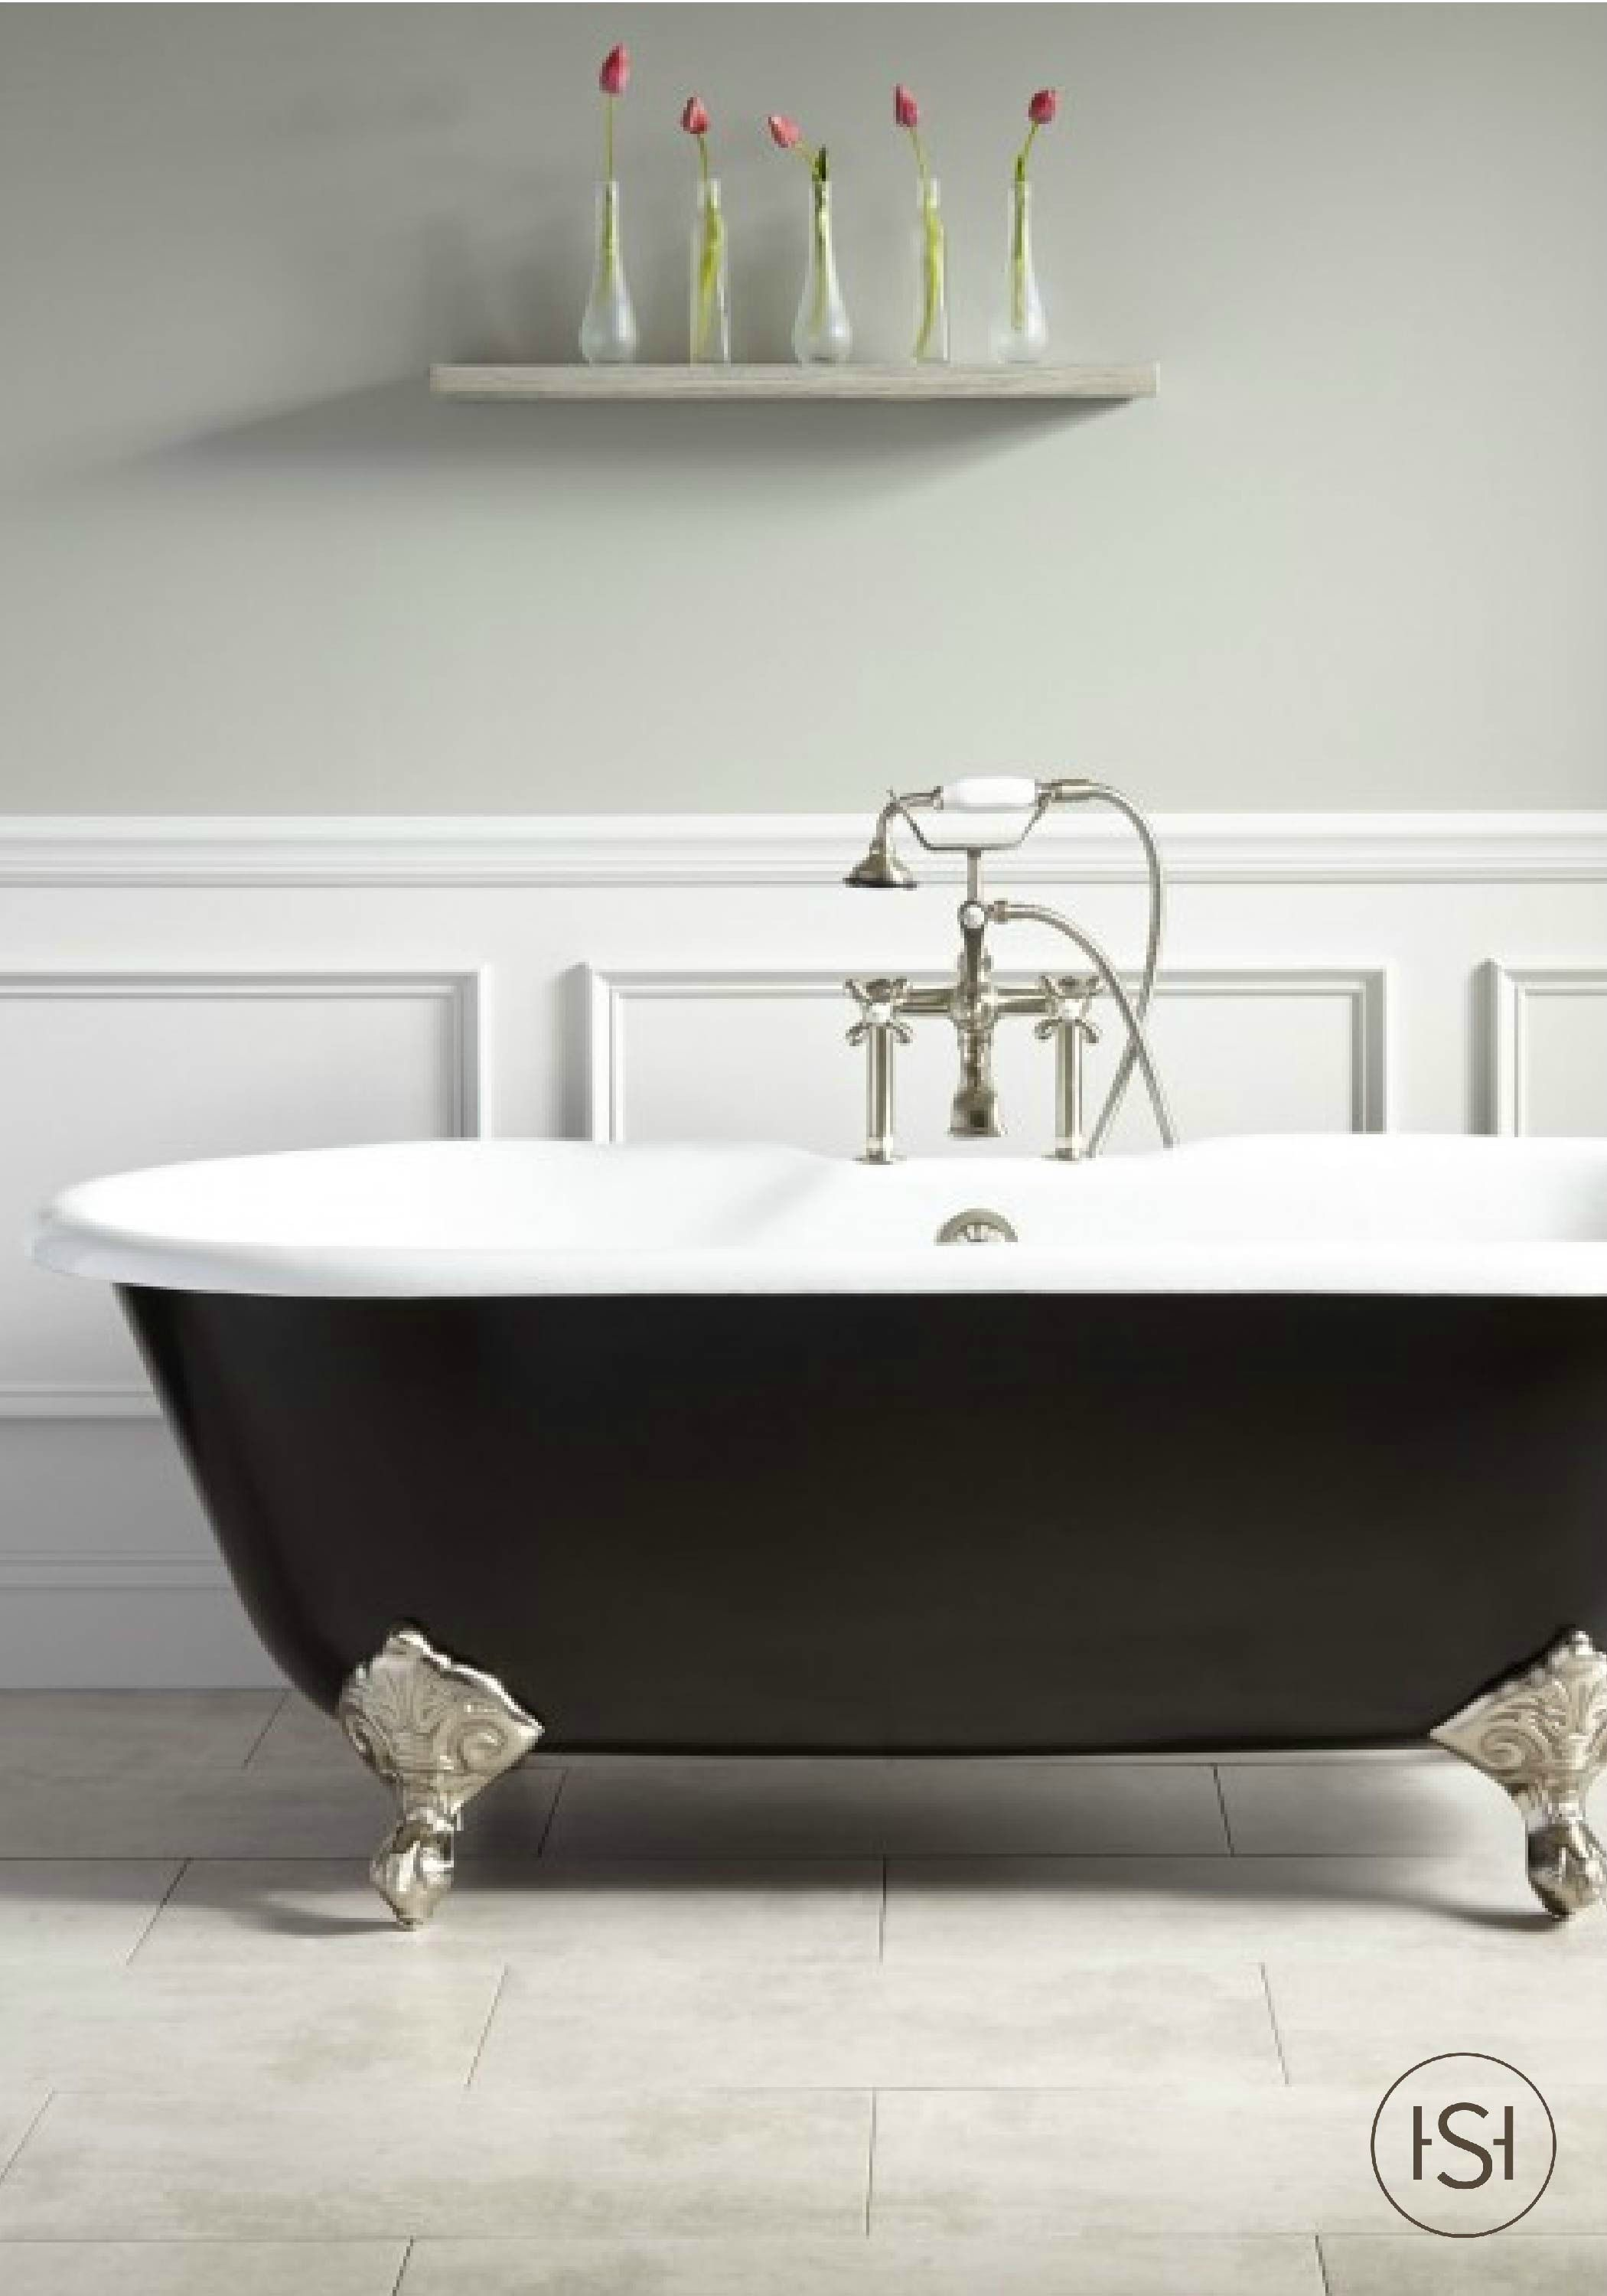 With A Timeless Design This Black Painted Tub Is The Perfect